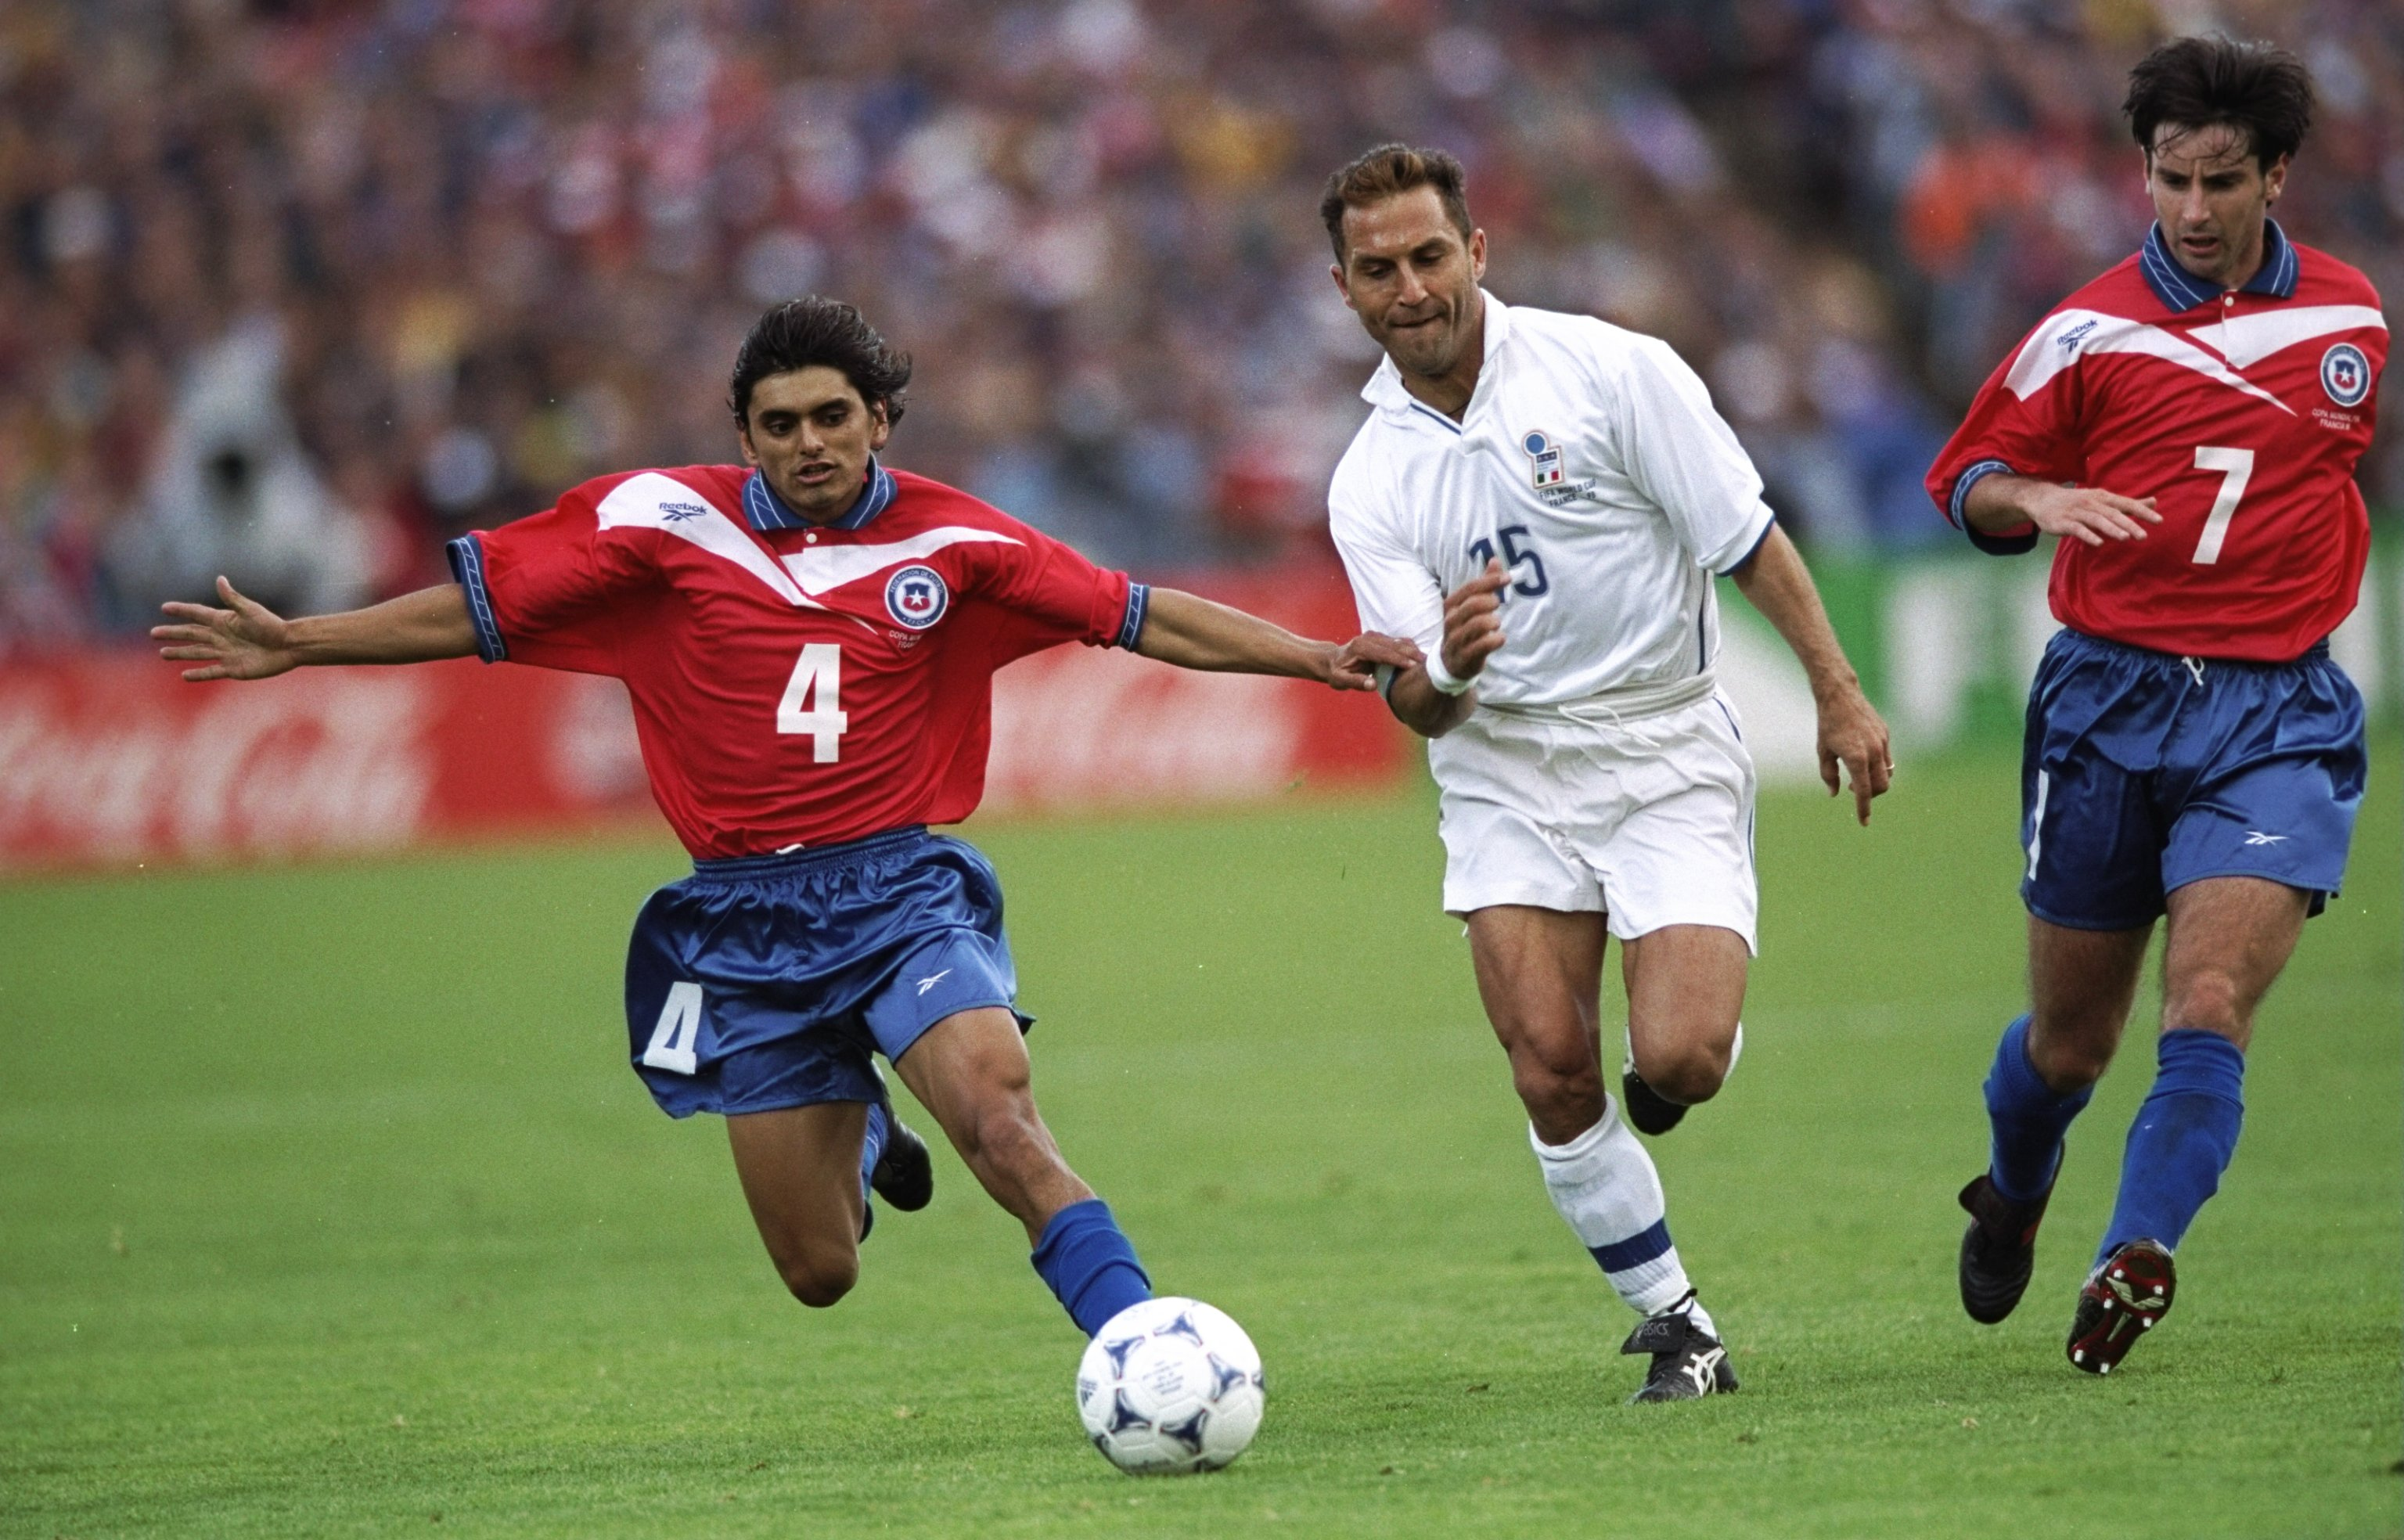 11 Jun 1998:  Angelo Di Livio of Italy takes on Francisco Rojas and Nelson Parraguez of Chile during the World Cup group B game at the Parc Lescure in Bordeaux, France. The match ended 2-2.  \ Mandatory Credit: Shaun Botterill /Allsport